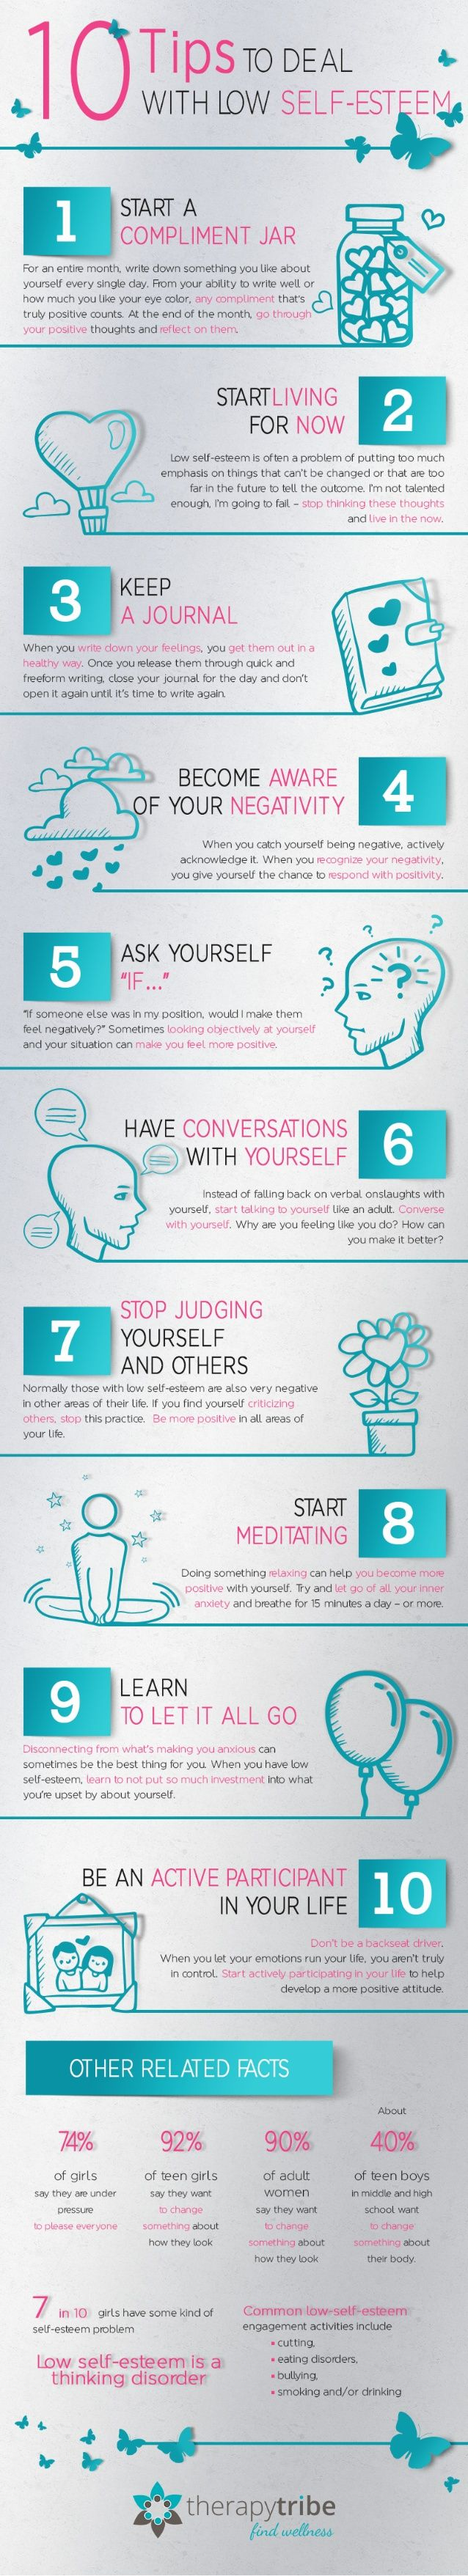 nookselfimprove.net 10-tips-to-deal-with-low-self-esteem